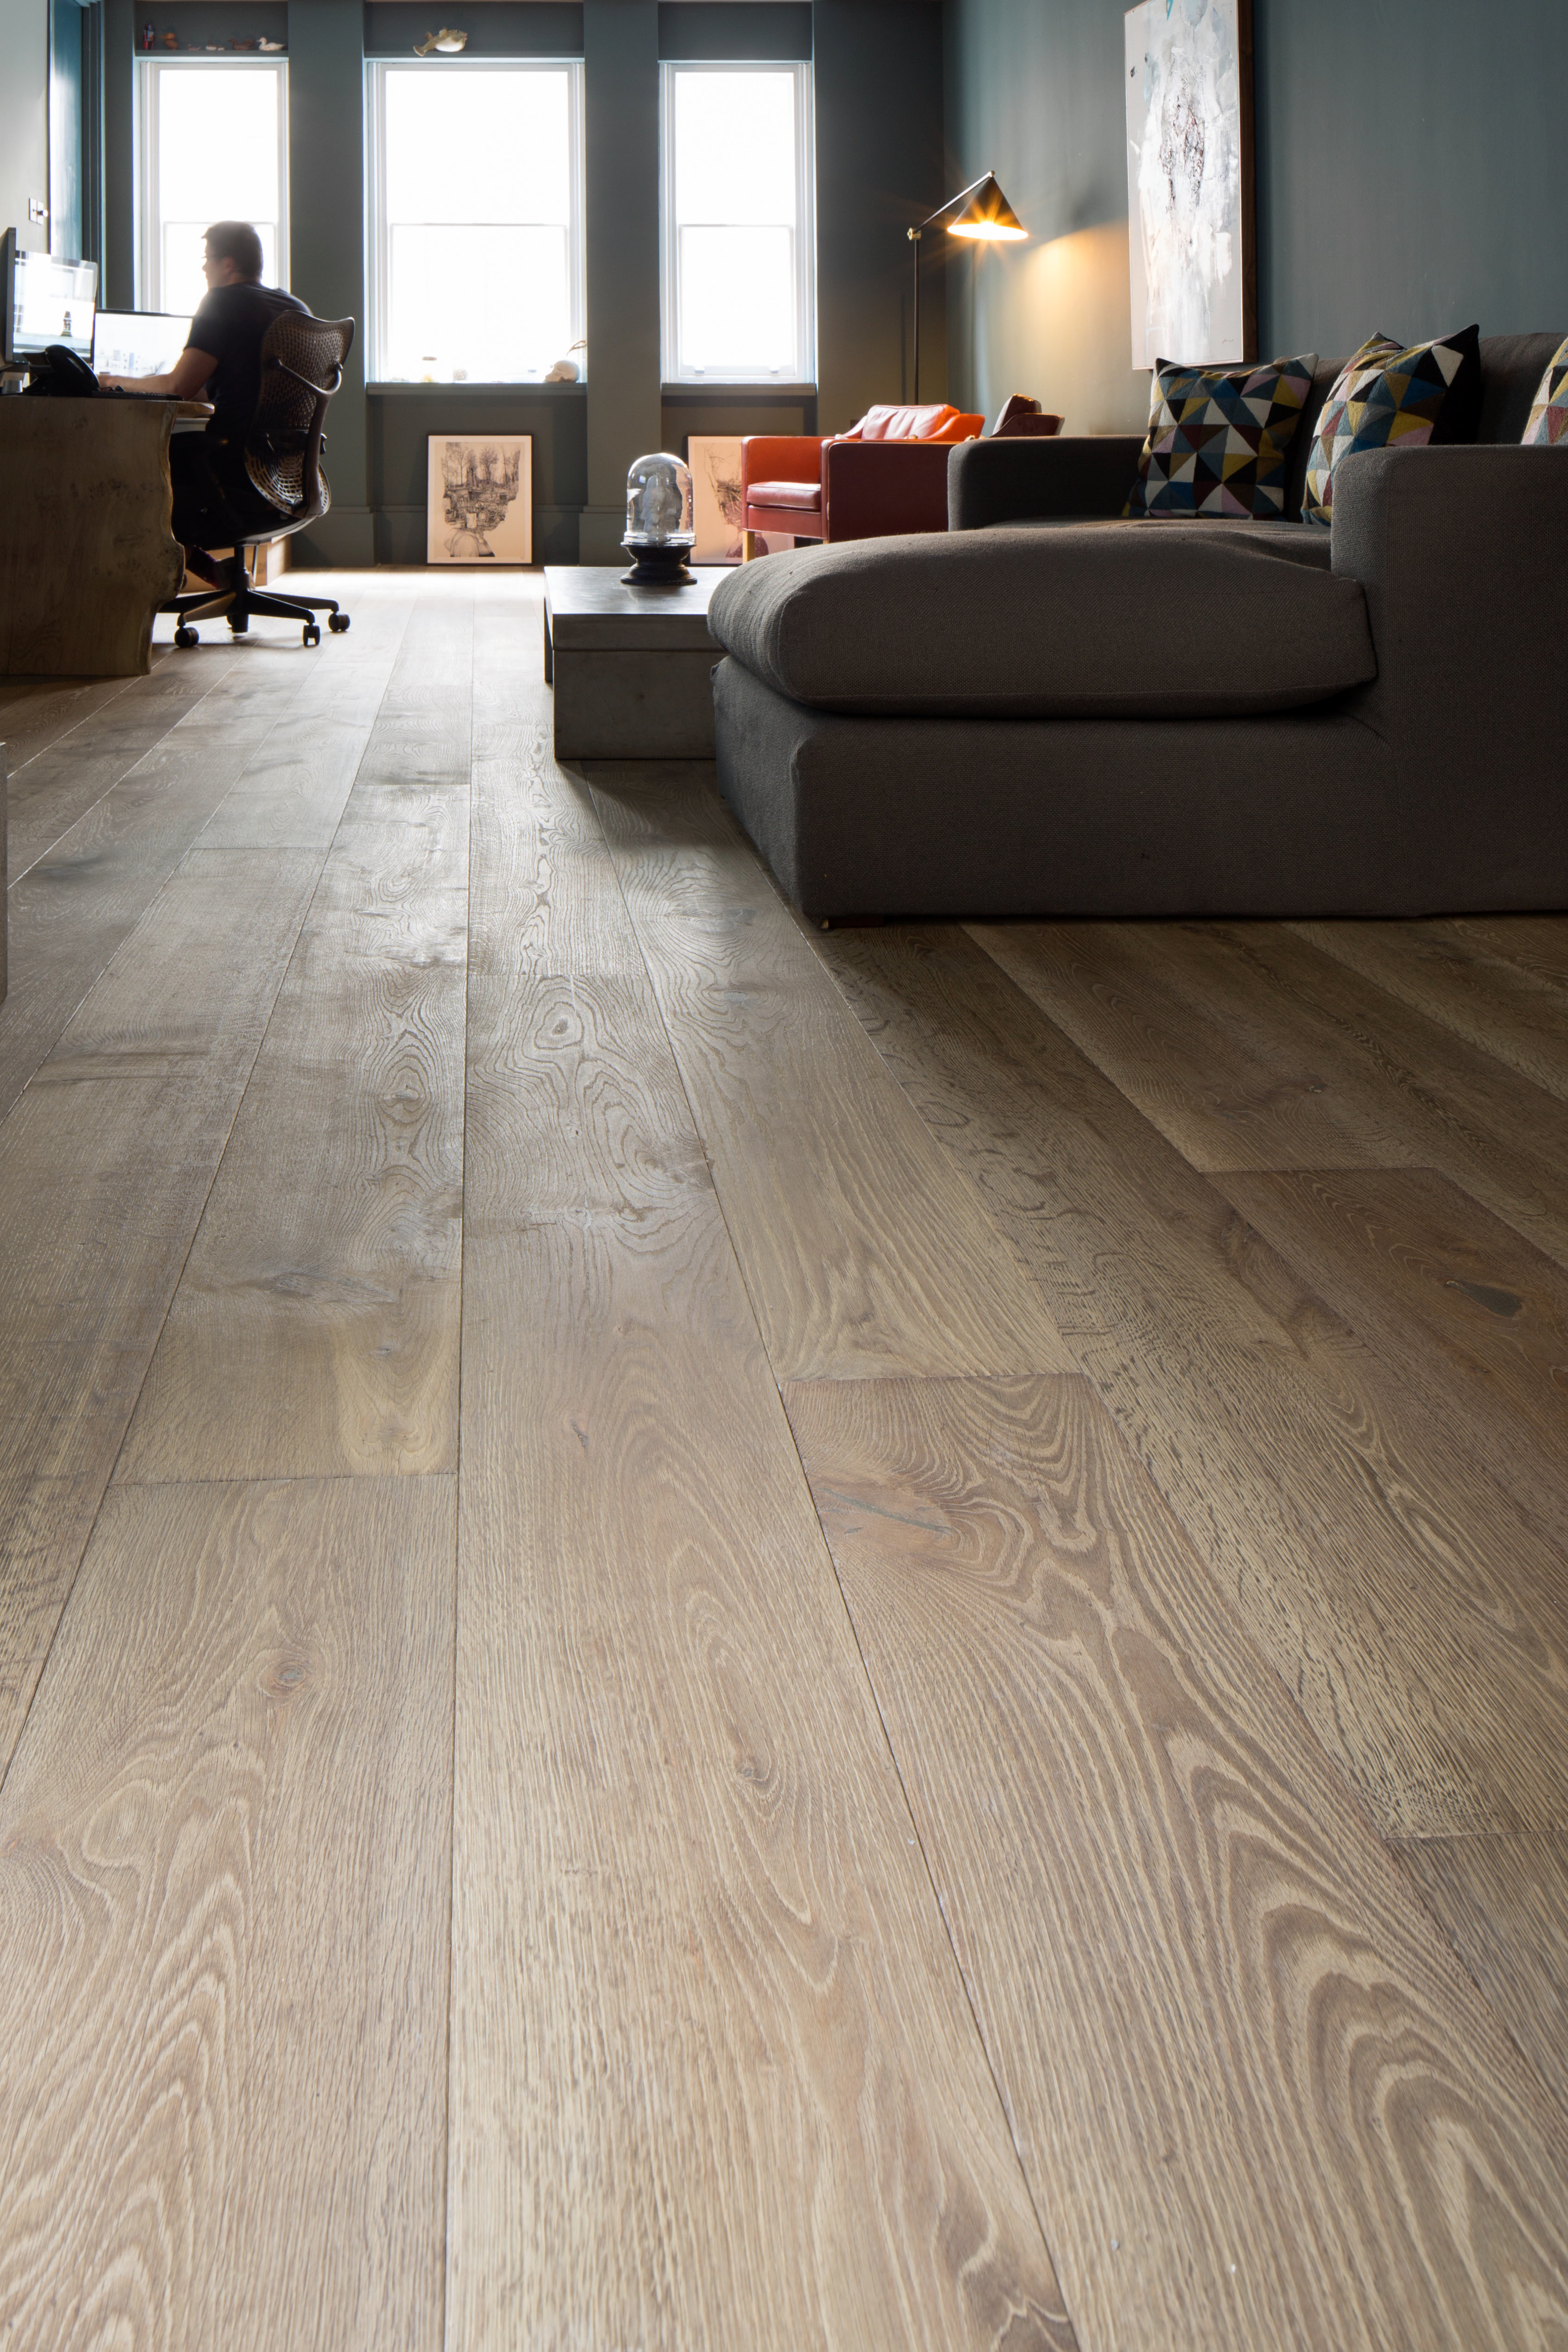 wood floor office. Hardwood Floors Will Never Go Out Of Style And This Year Wide Plank Wood Flooring Remains In High Demand. Floor Office